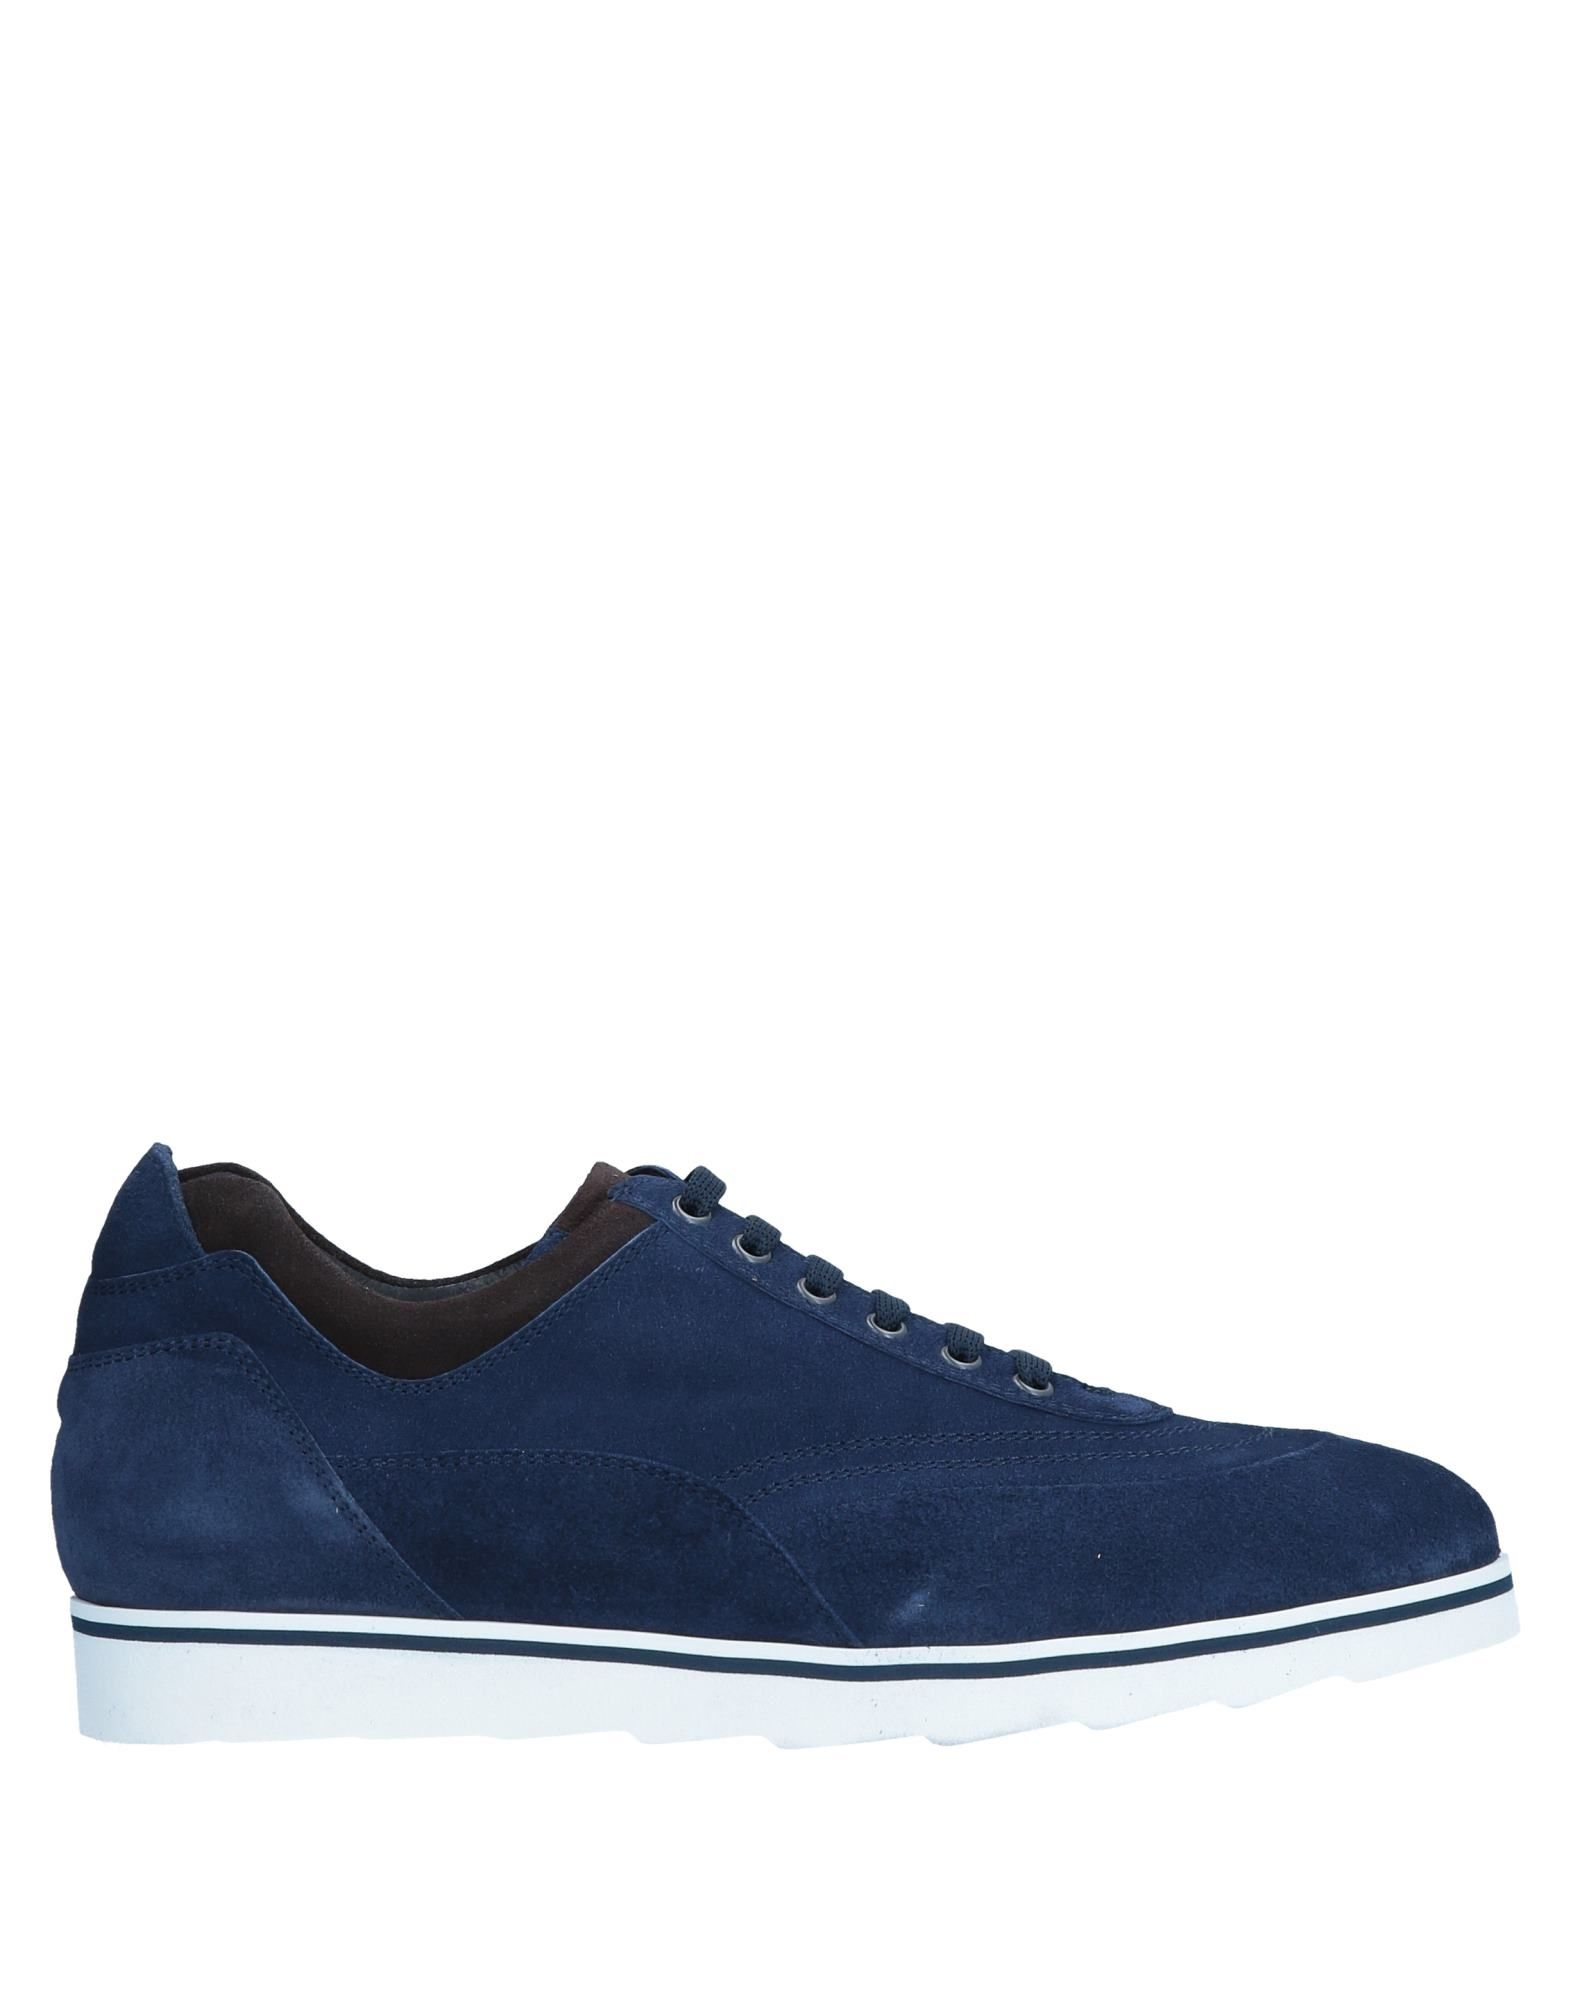 Sneakers Gianfranco Lattanzi Homme - Sneakers Gianfranco Lattanzi  Bleu Chaussures casual sauvages